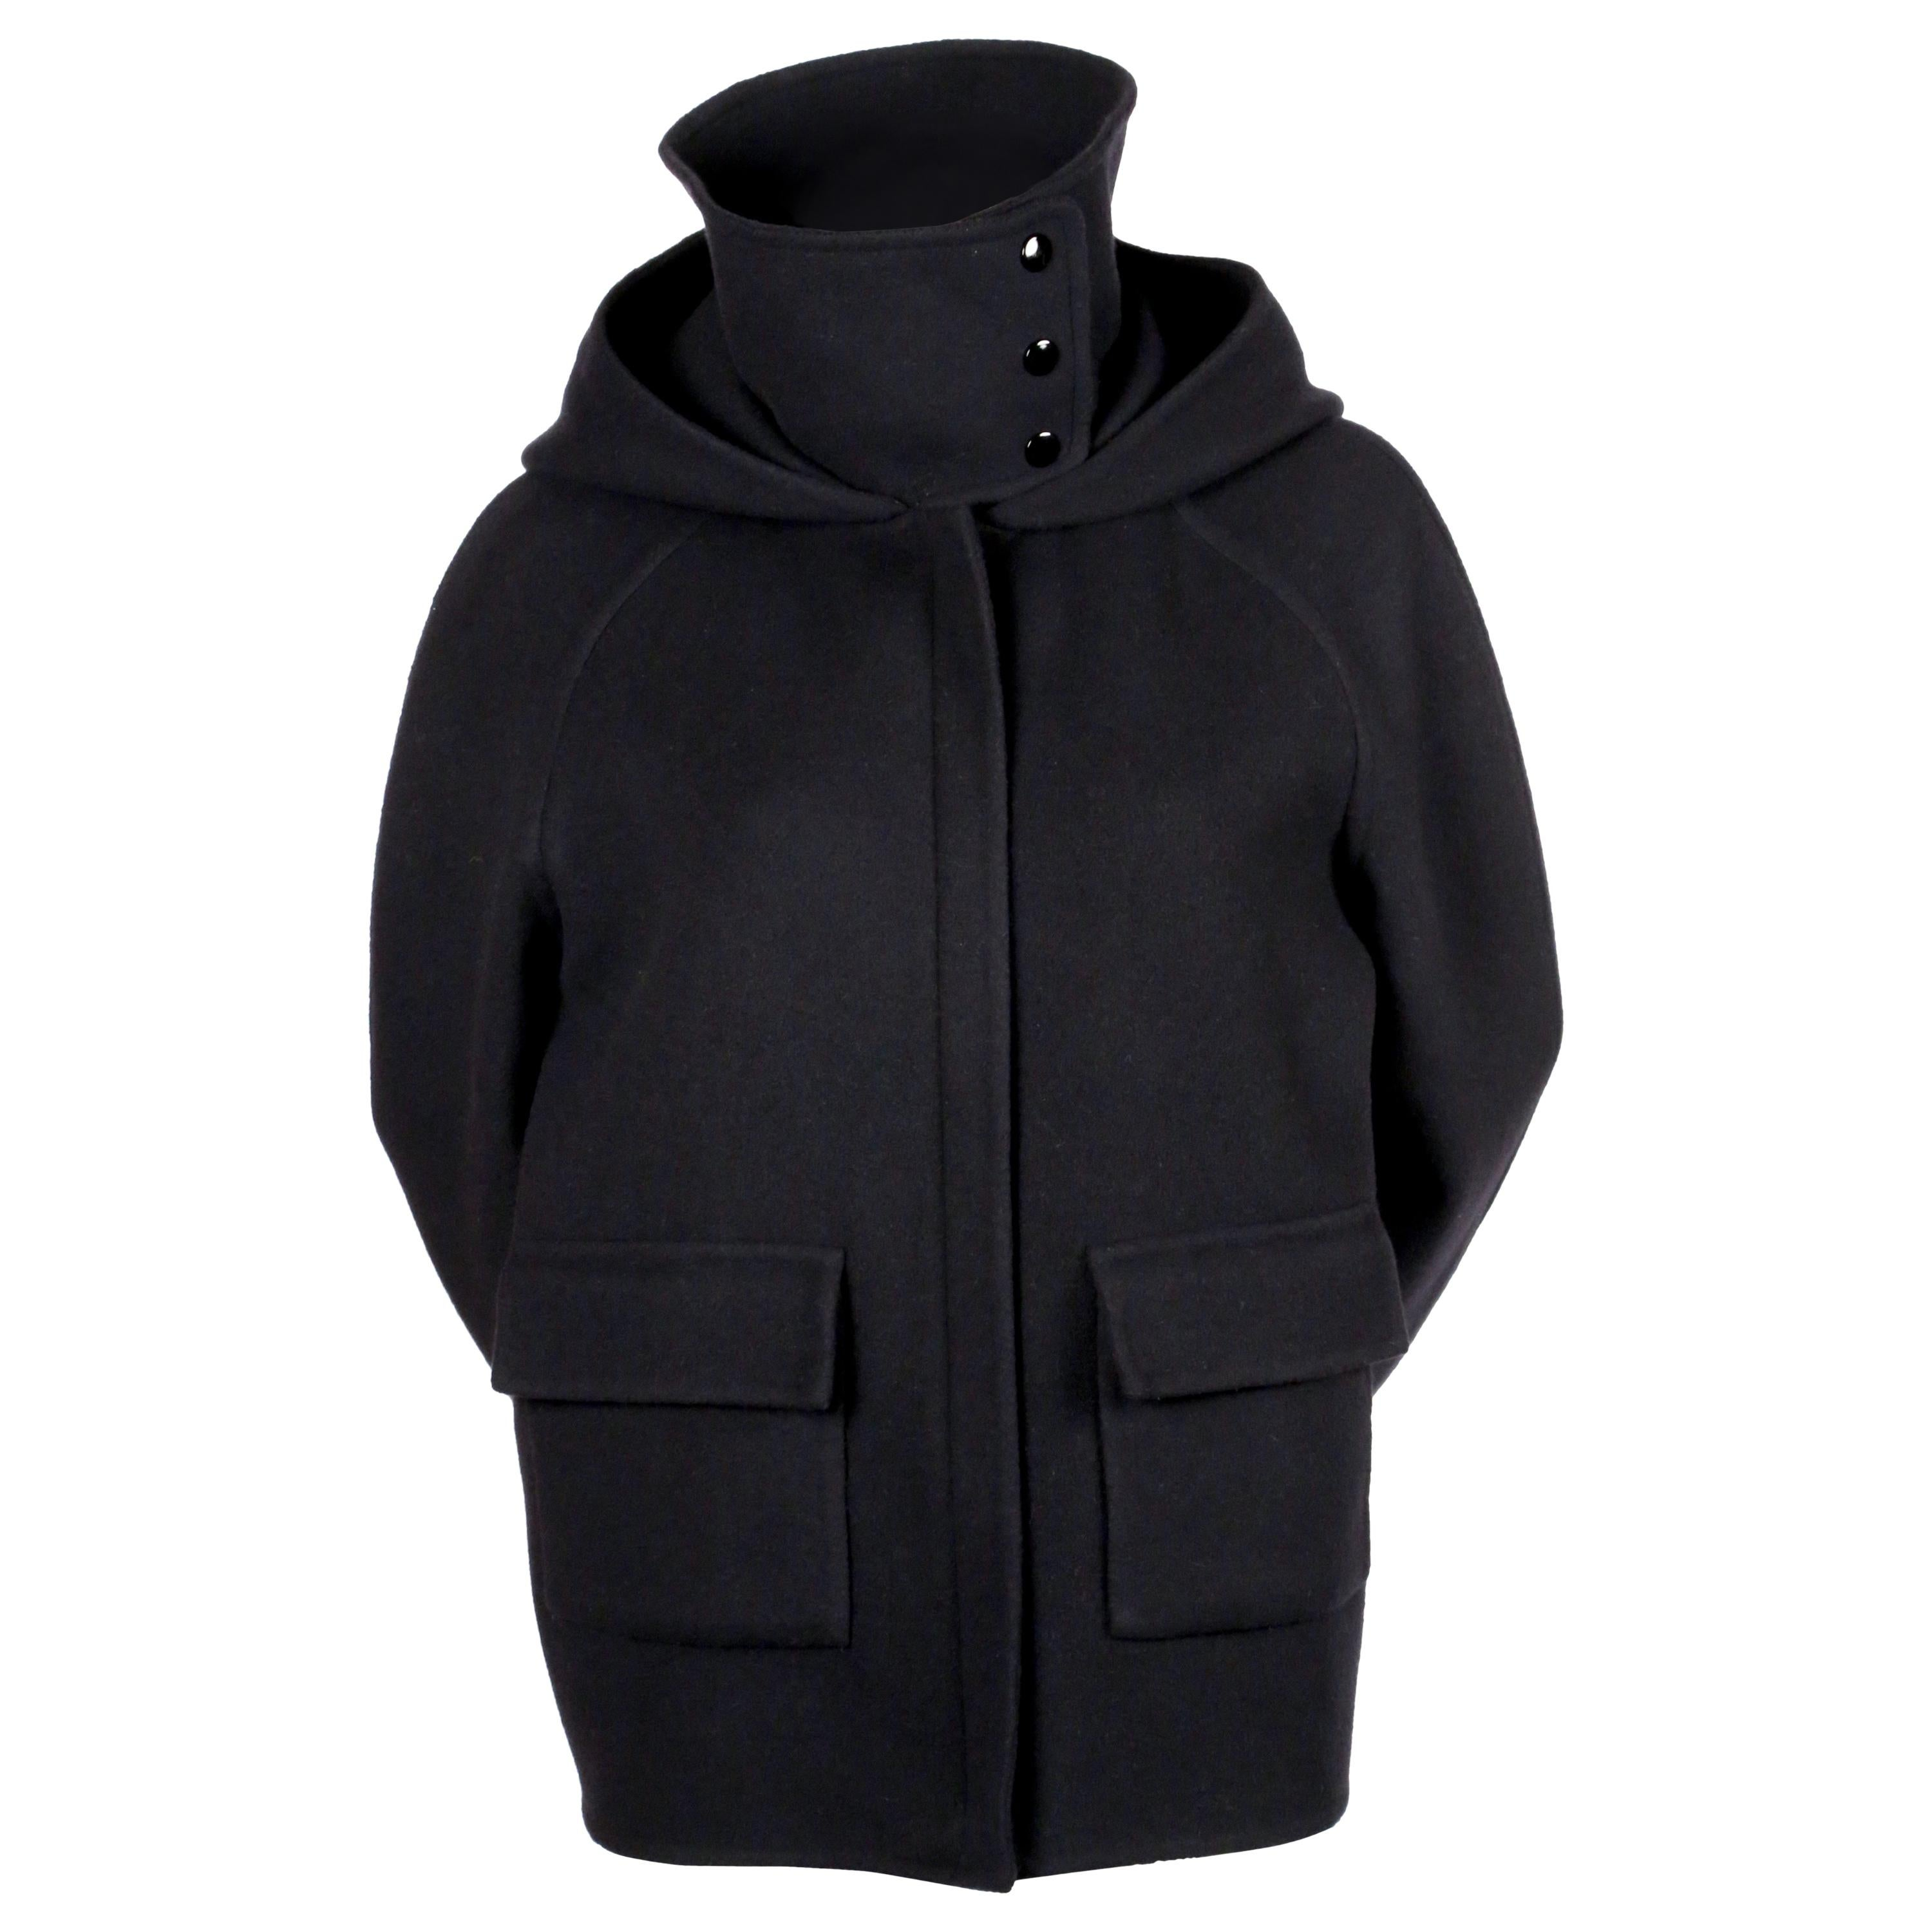 new 2014 CELINE by PHOEBE PHILO navy hooded cashmere jacket with patch pockets